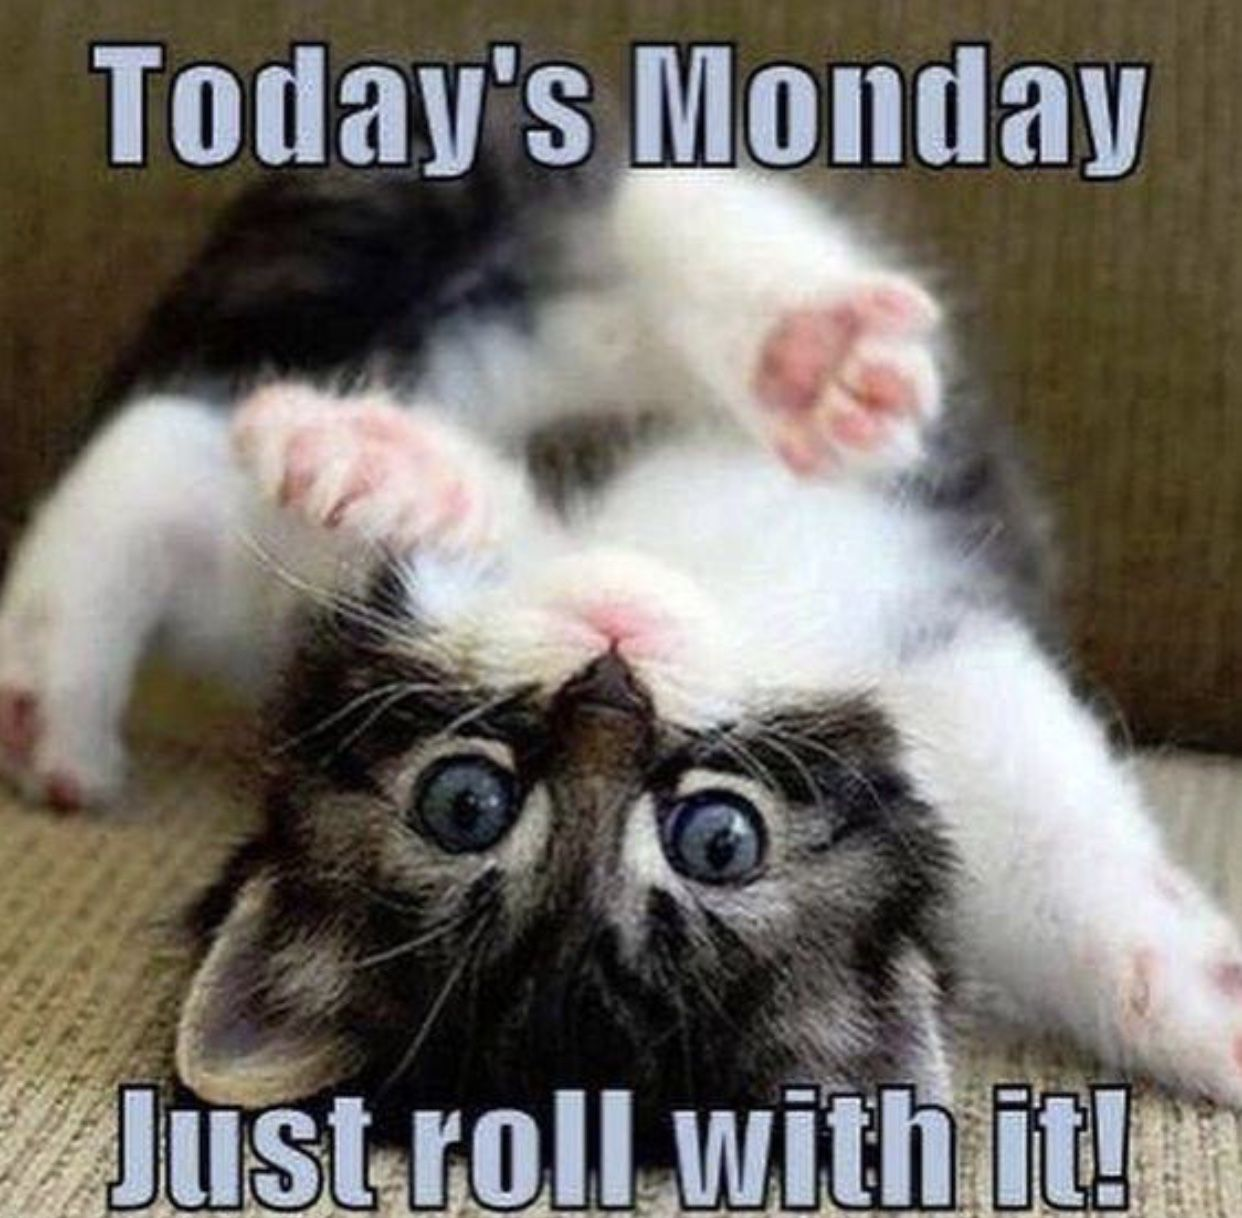 Pin By Cathy Euzenas On Seven Days A Week Good Morning Funny Monday Humor Morning Humor